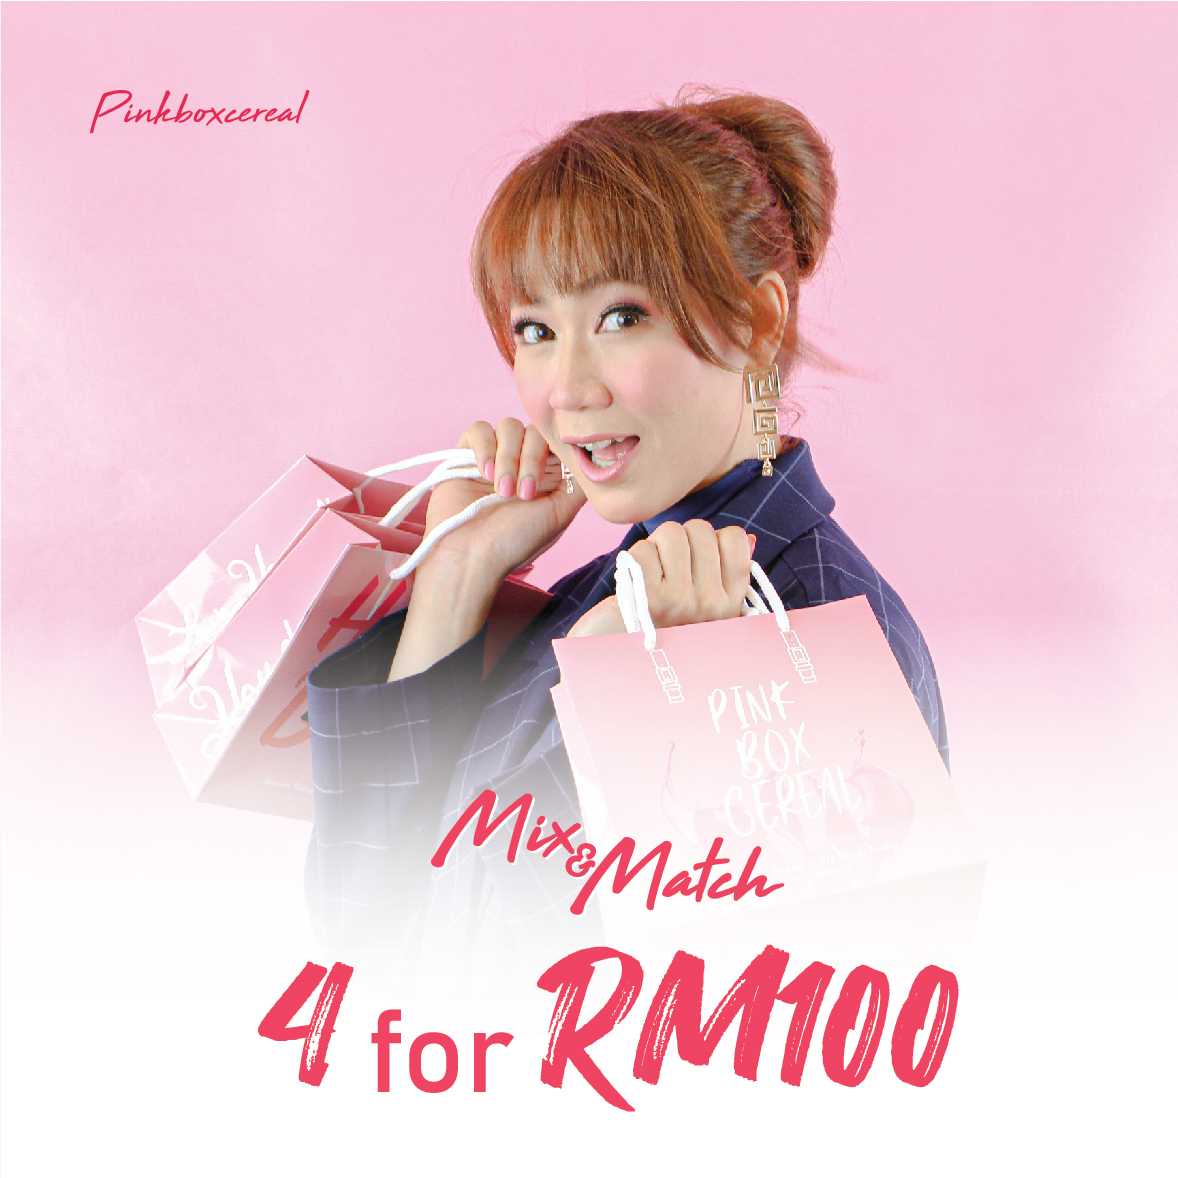 Click here for our 4 for RM100 offer!